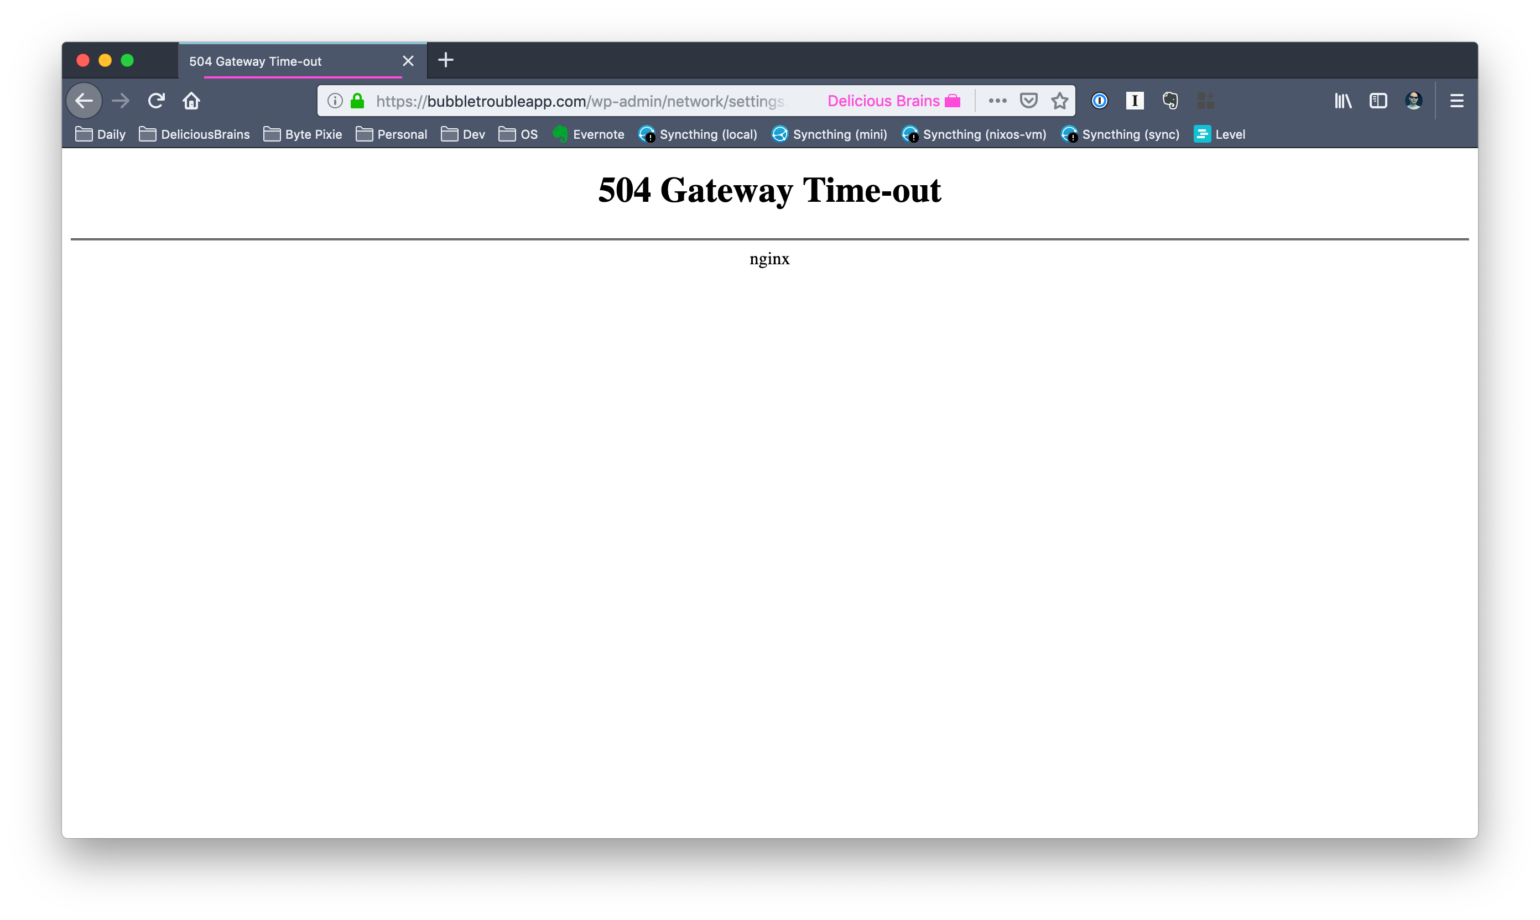 504 Gateway Timeout on large multisite settings page